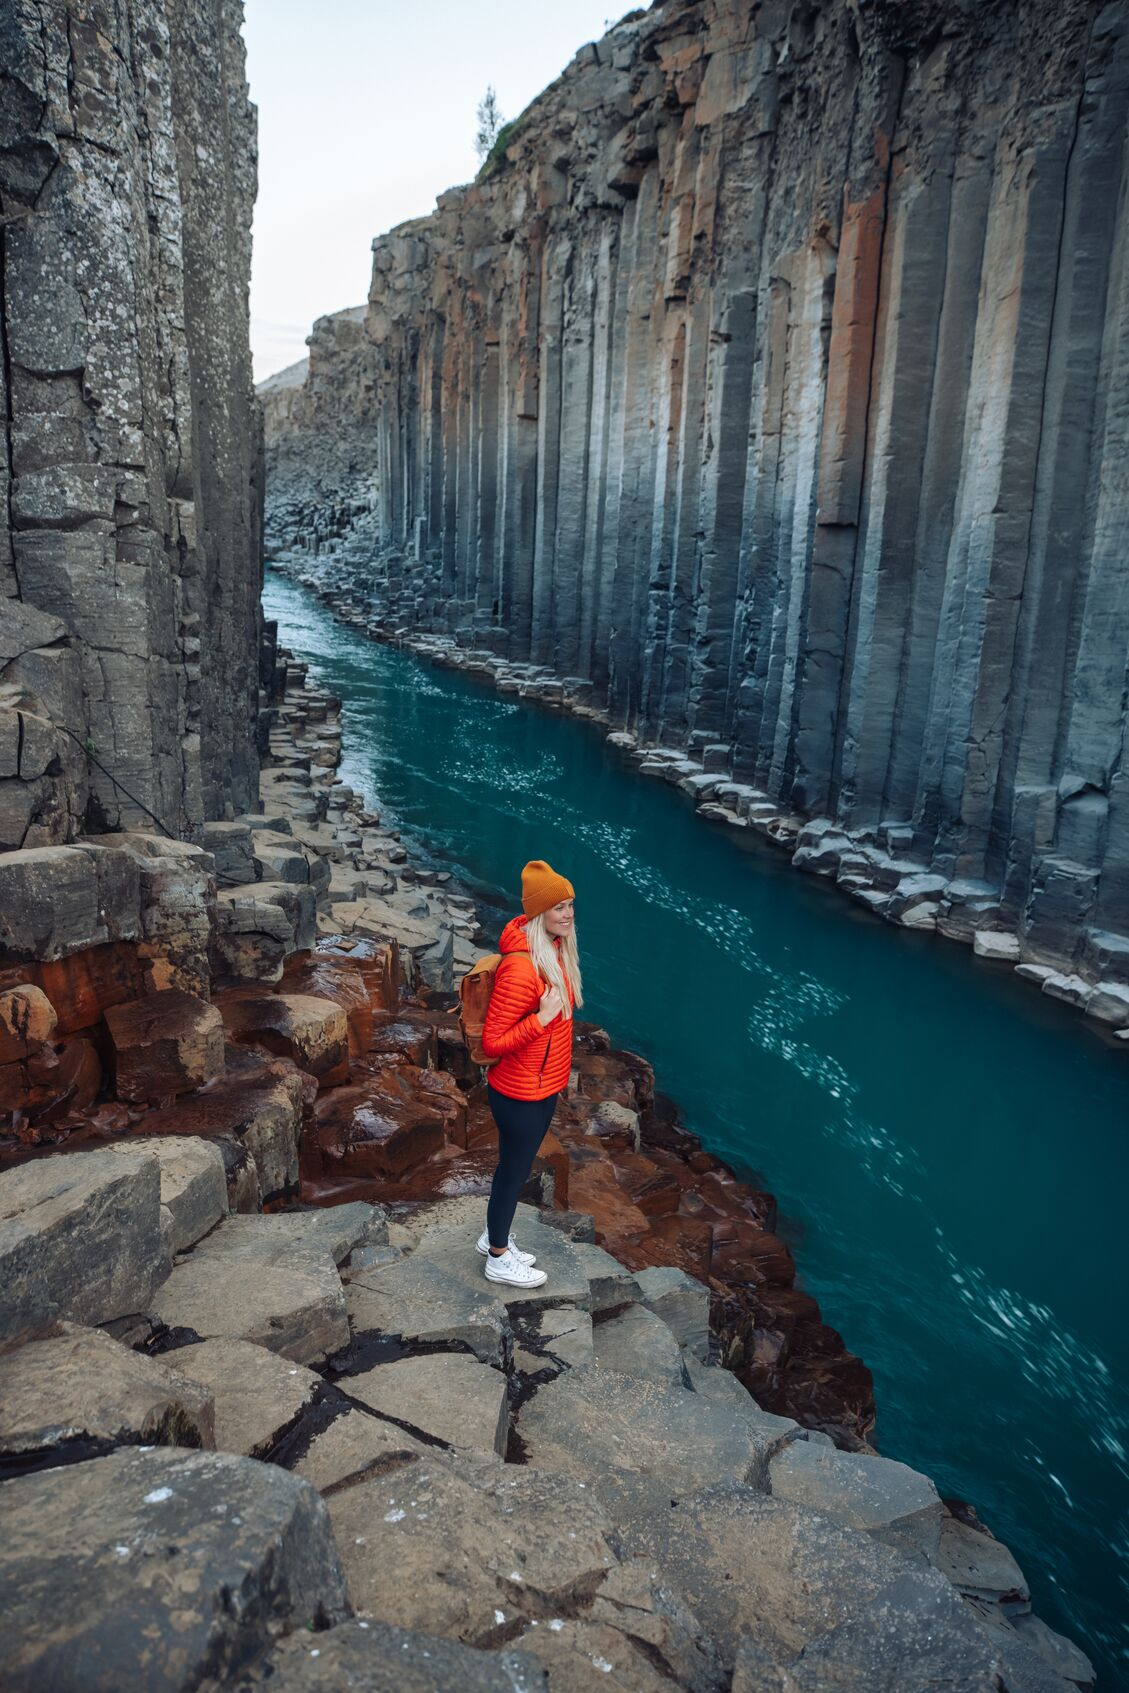 Ása Steinars standing in Studlagil canyon, located in the East of Iceland